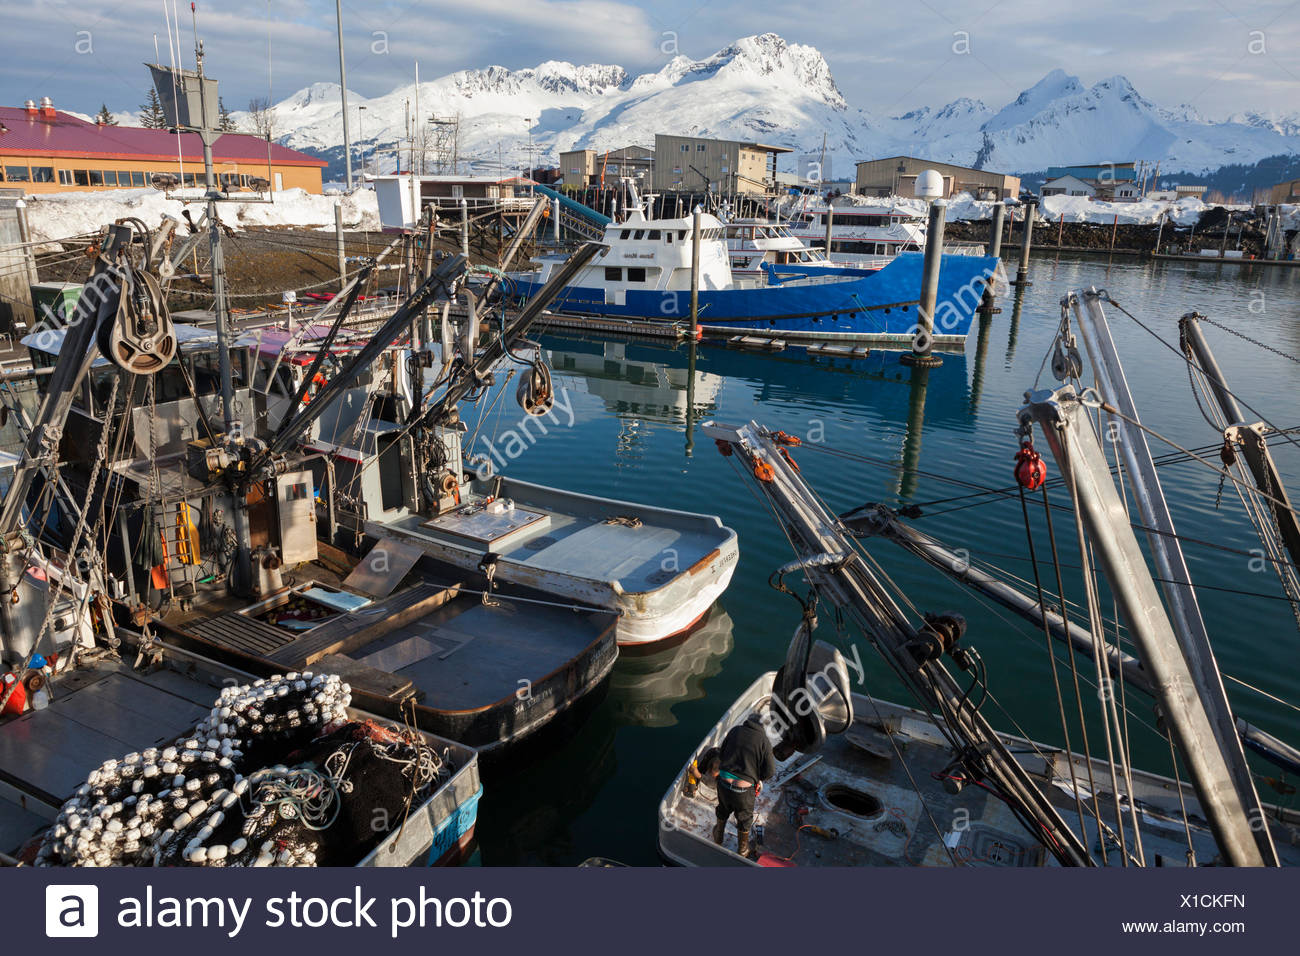 Fishing boats moored at the harbor in Valdez, Alaska. Peaks of the Chugach Mountains are visible across the fjord. - Stock Image